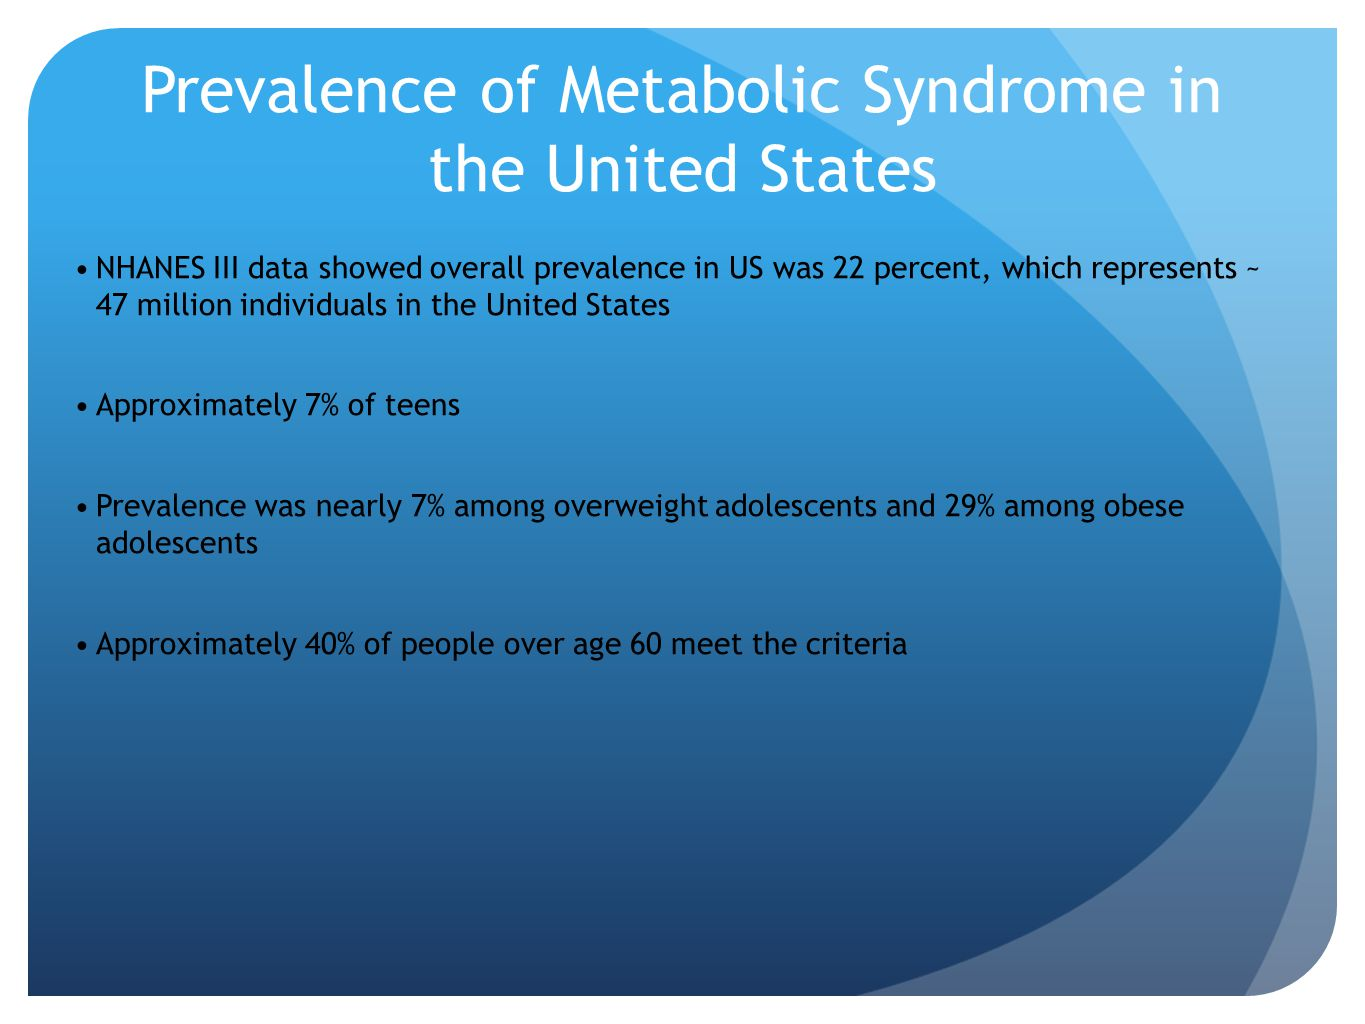 Prevalence of Metabolic Syndrome in the United States